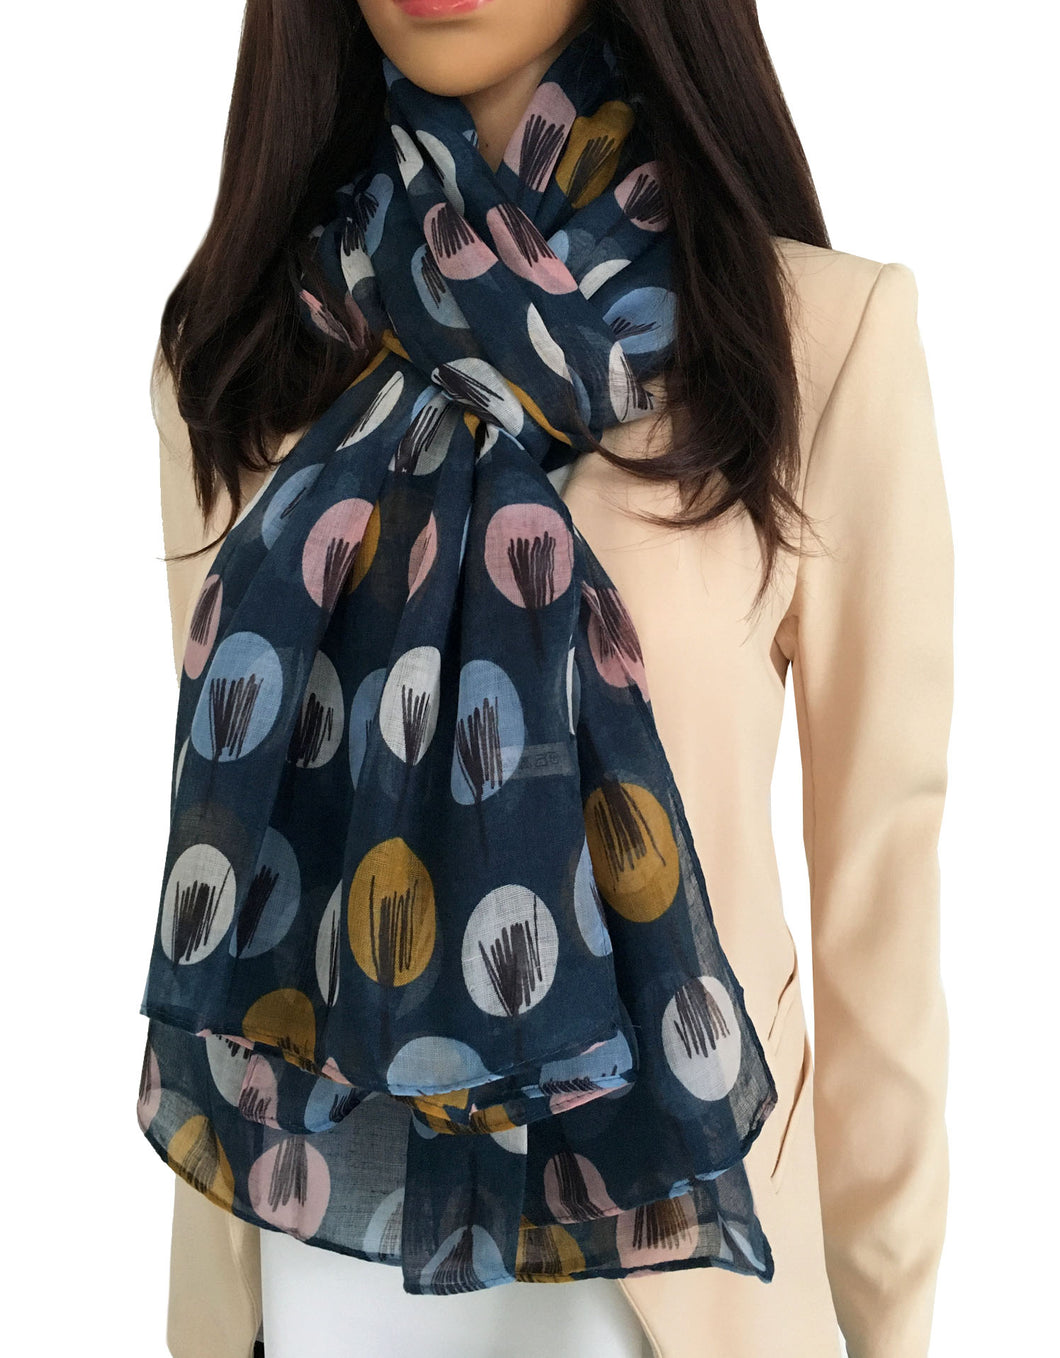 LIGHTWEIGHT NAVY BLUE SKETCHED TREES SHEER NECK SCARF